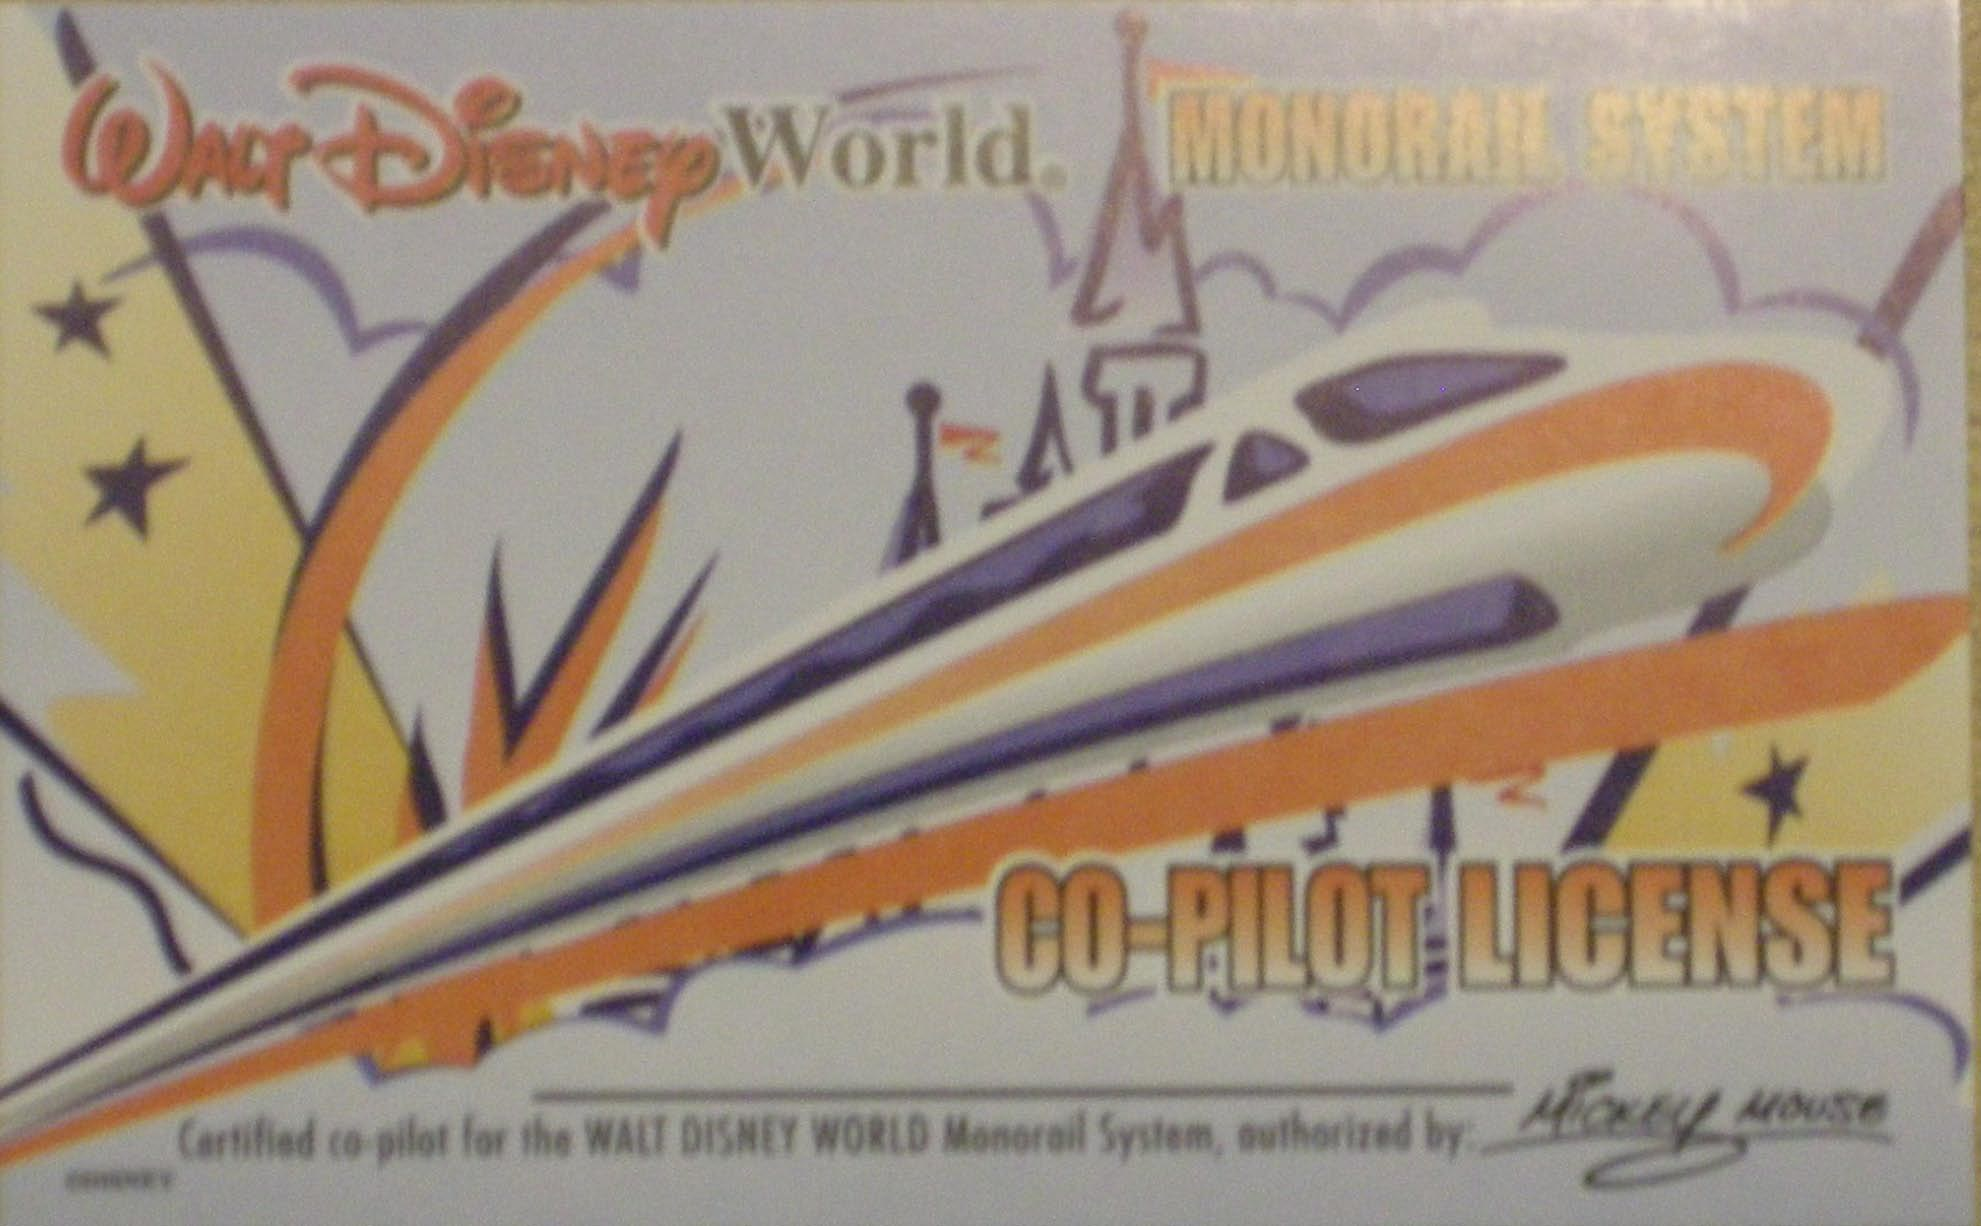 Monorail Co-Pilot-License